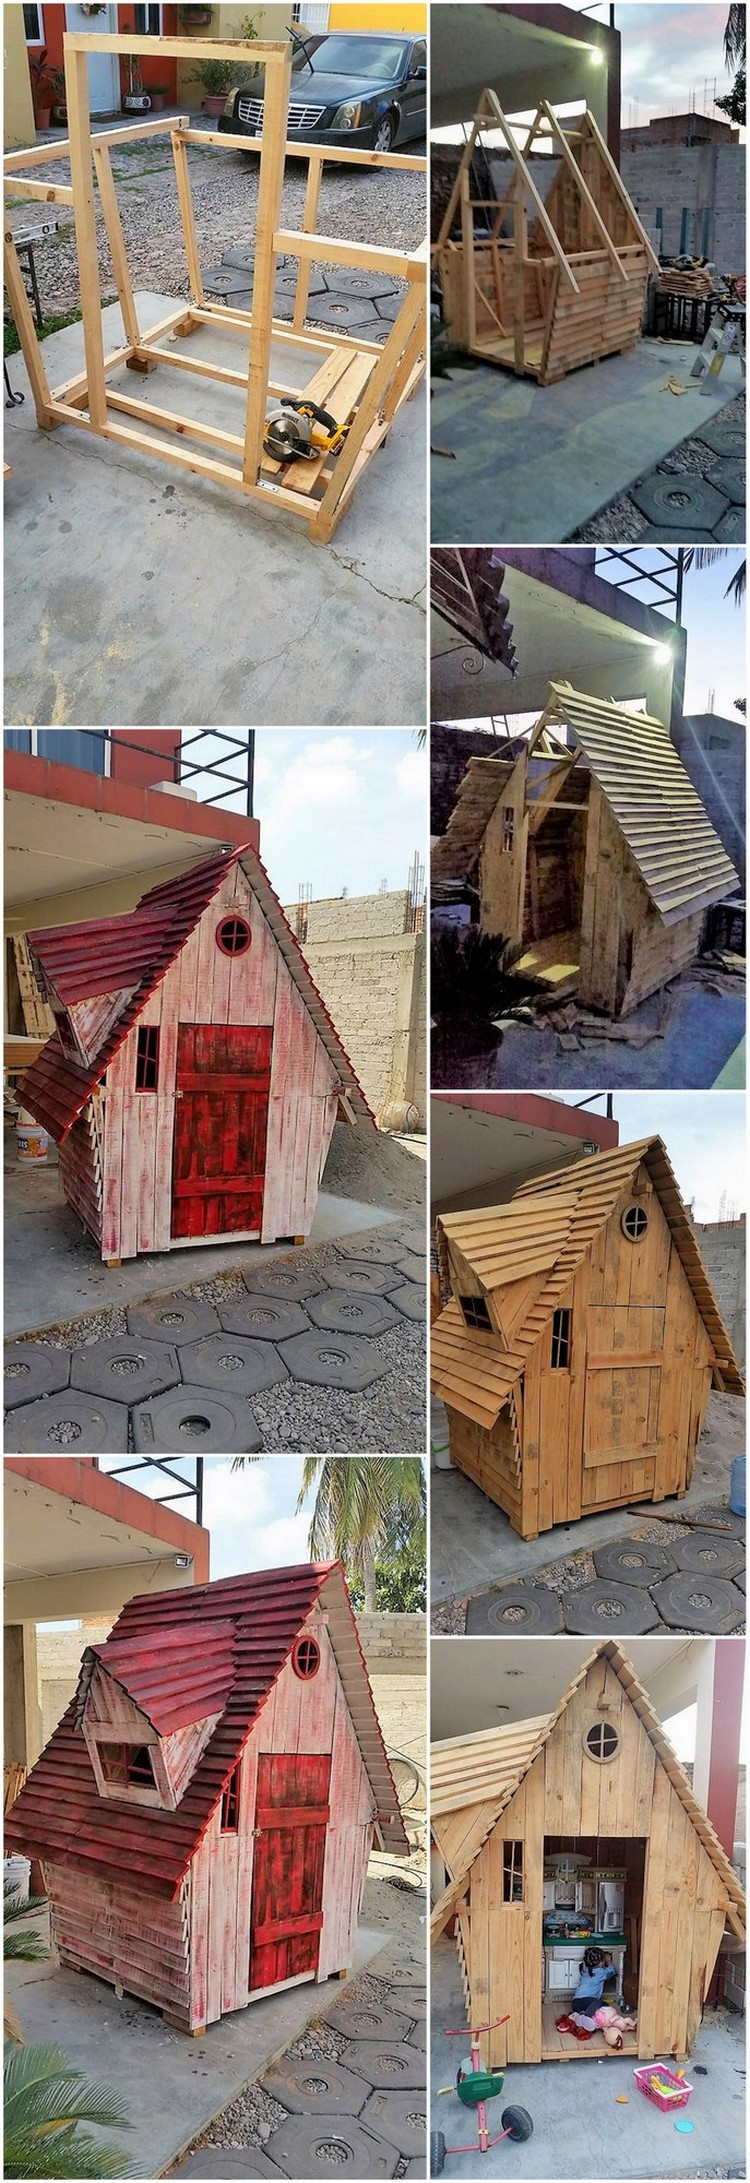 DIY Wood Pallet Garden Cabin House Step by Step Plan